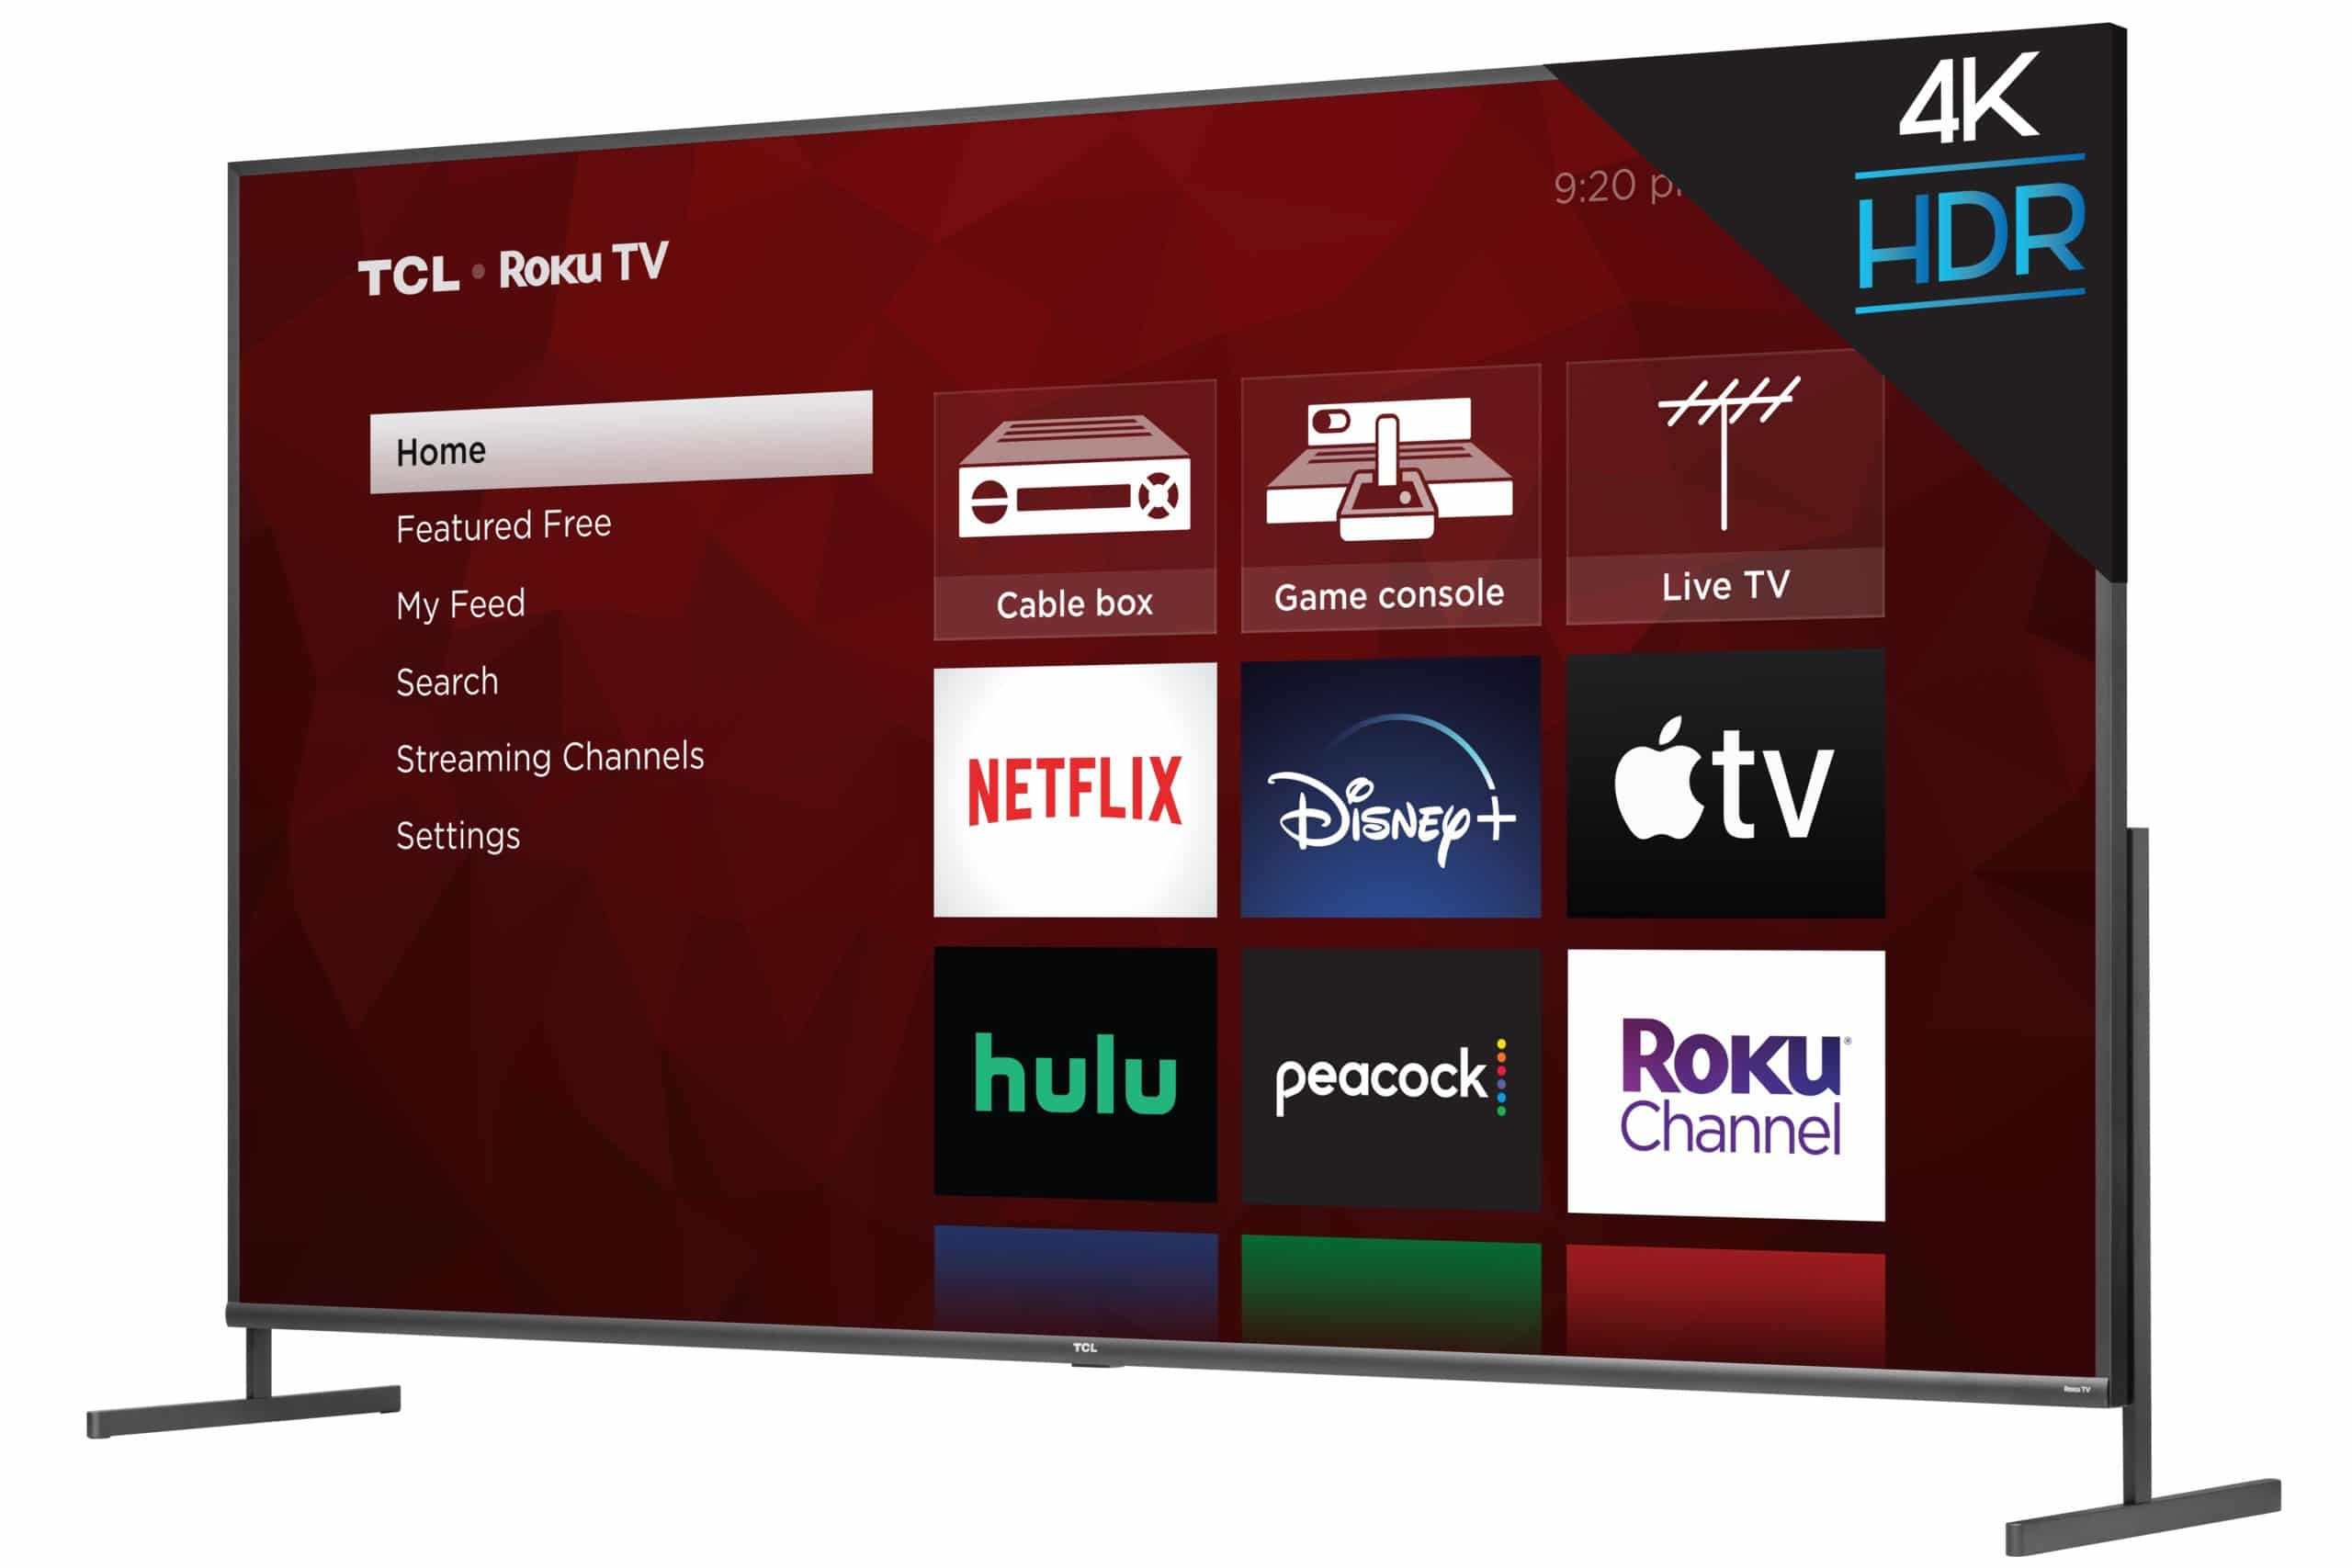 TCL XL collection: Model 85S435